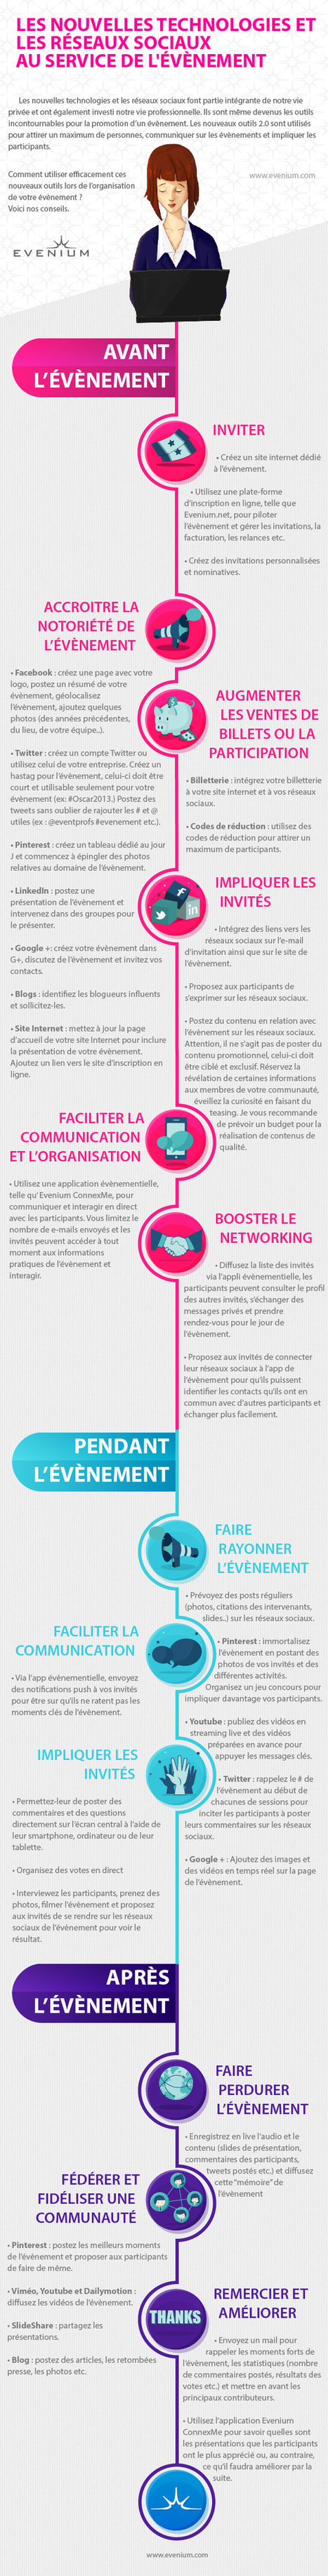 Community management et événementiel en infographie | Marketing Digital & Tendances | Scoop.it